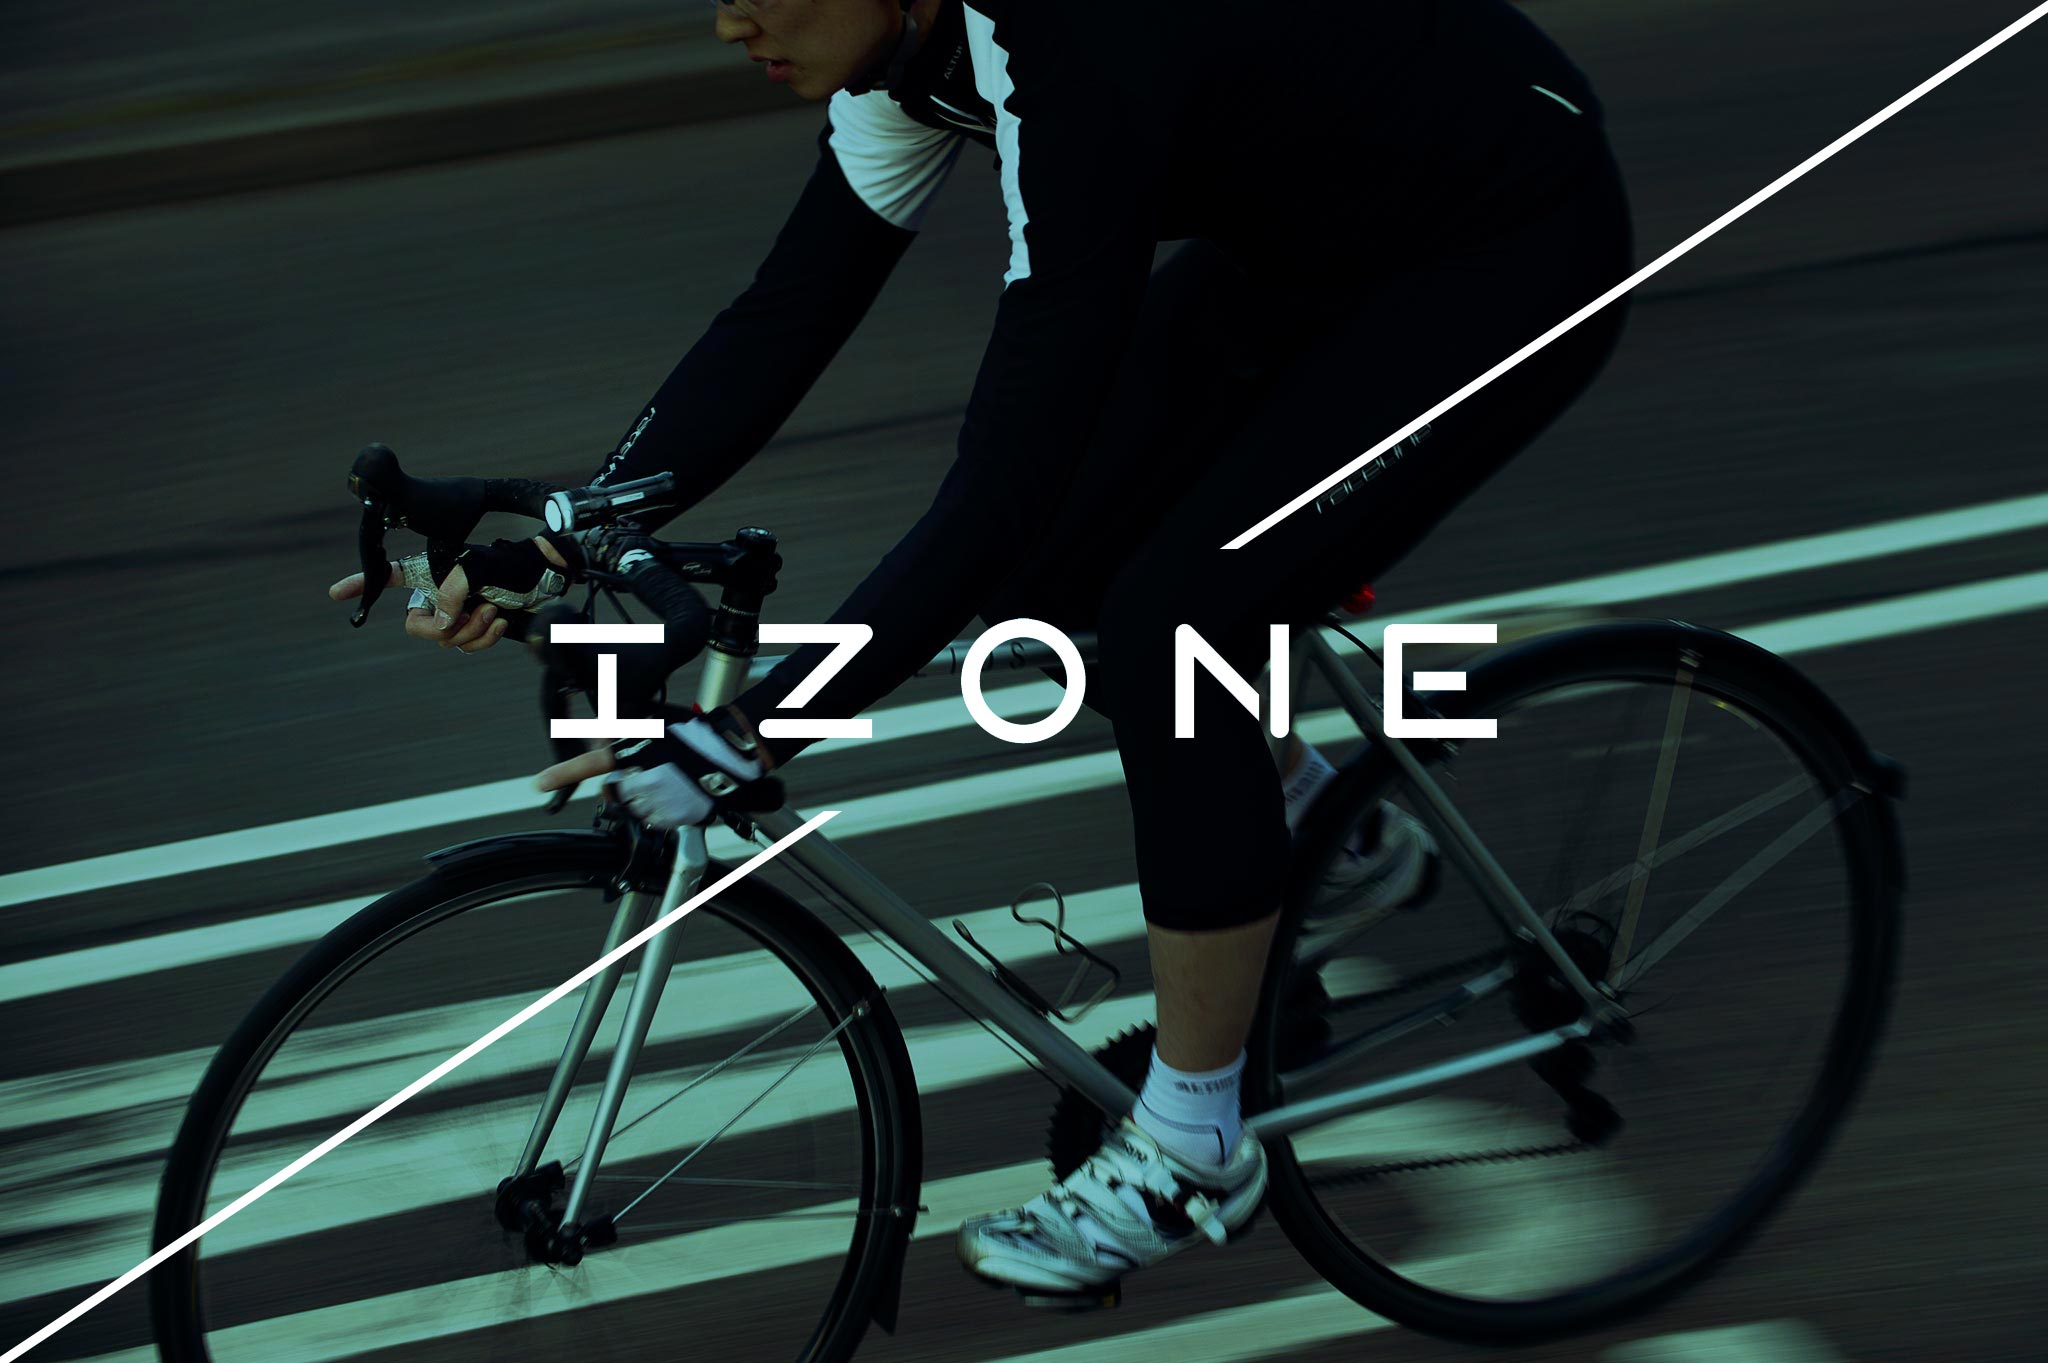 IZONE actively looks to develop new ideas to bring to its products.